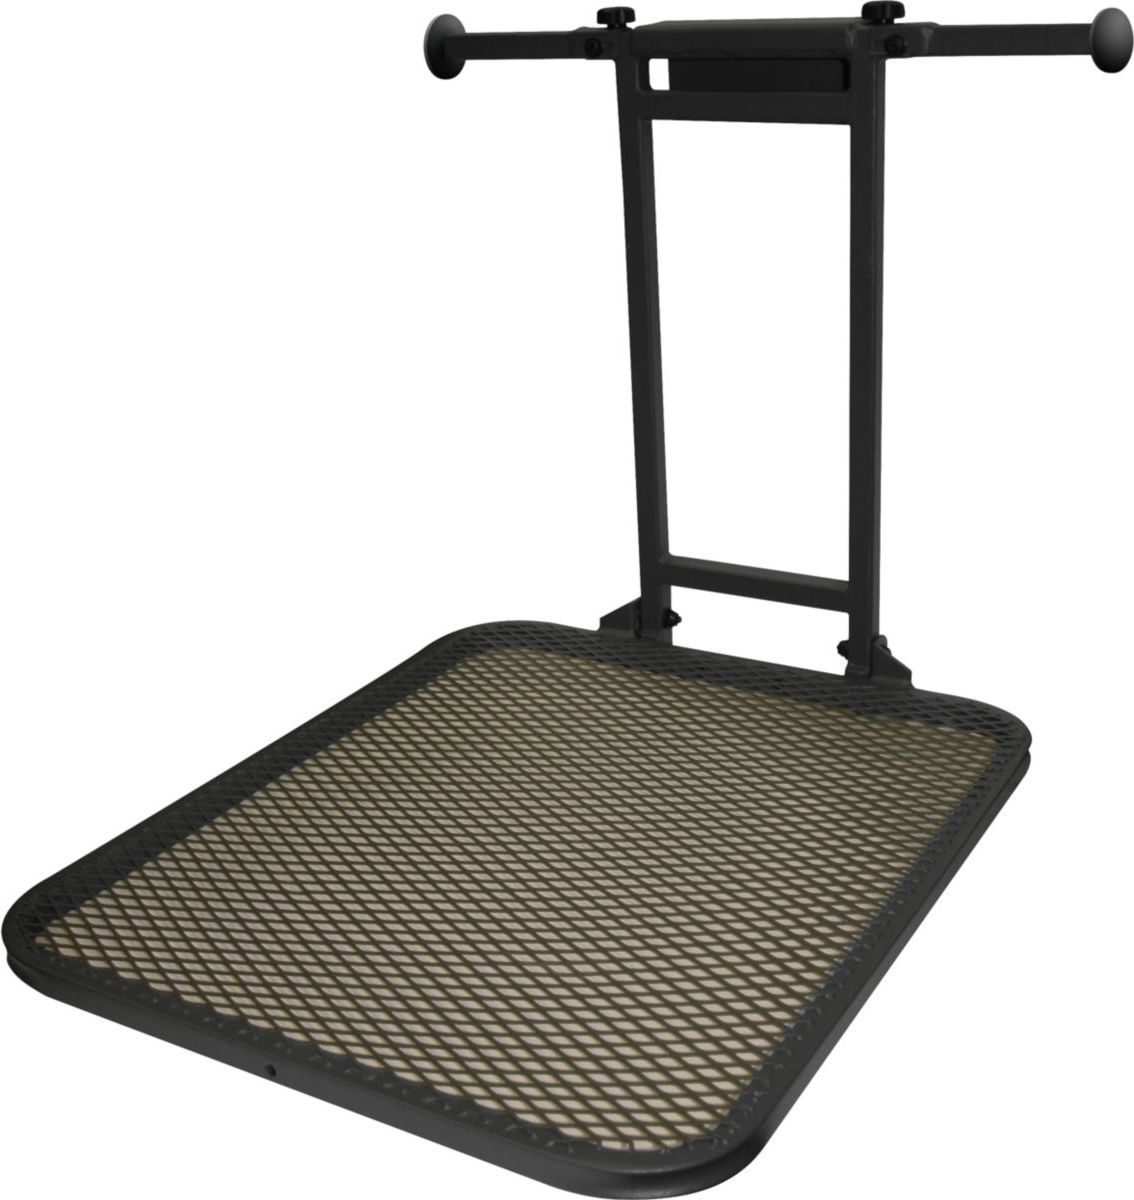 Drake Waterfowl Systems Quick-Hitch Retriever Stand